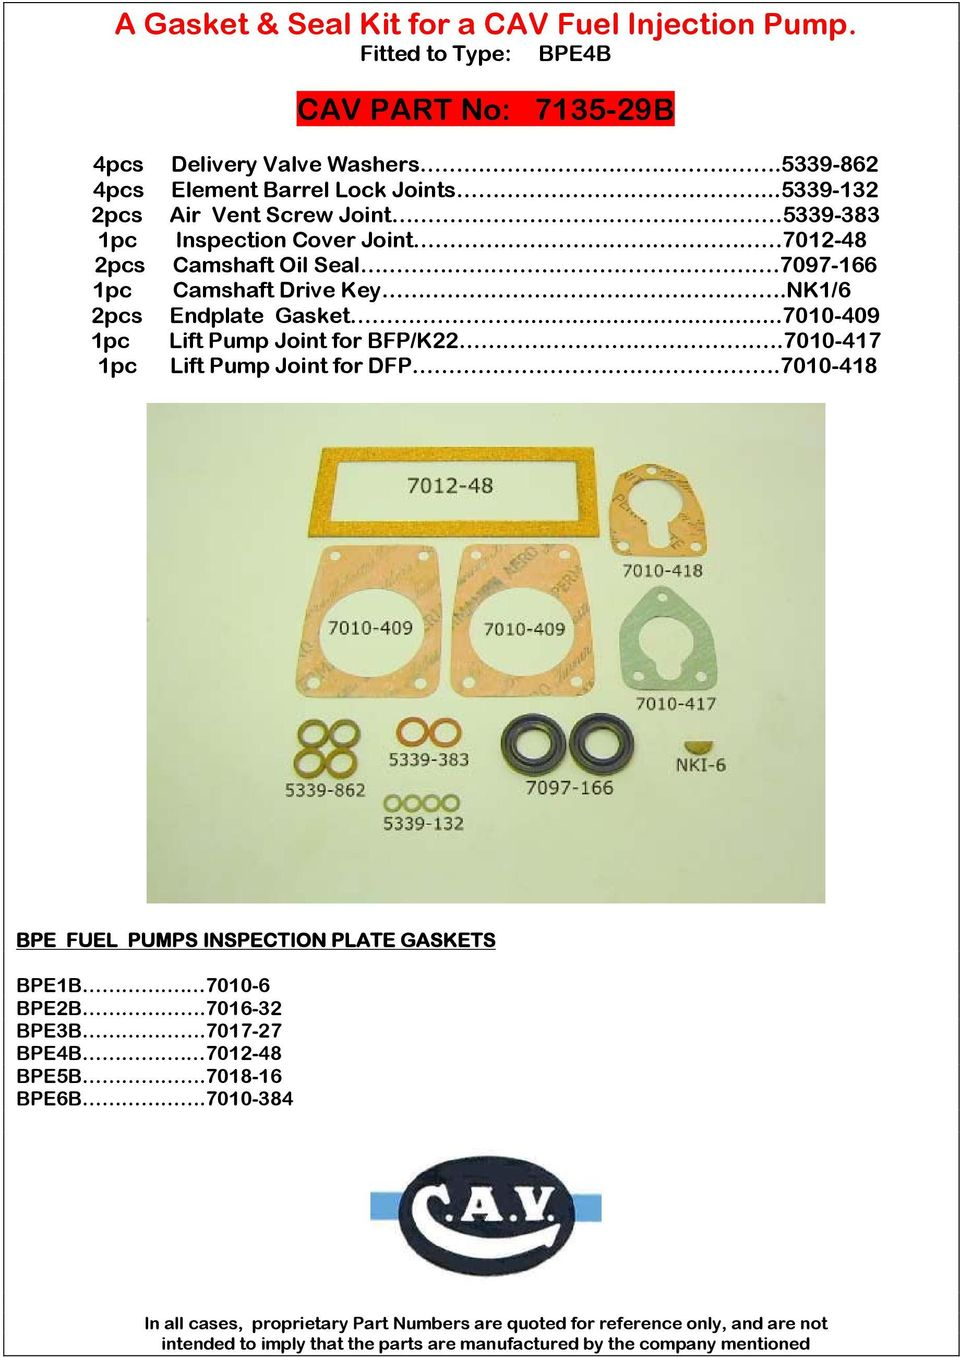 A Gasket Seal Kit For Cav Fuel Injection Pump Fitted To Aal R Diagram Further On 7010 409 Lift Joint Bfp K227010